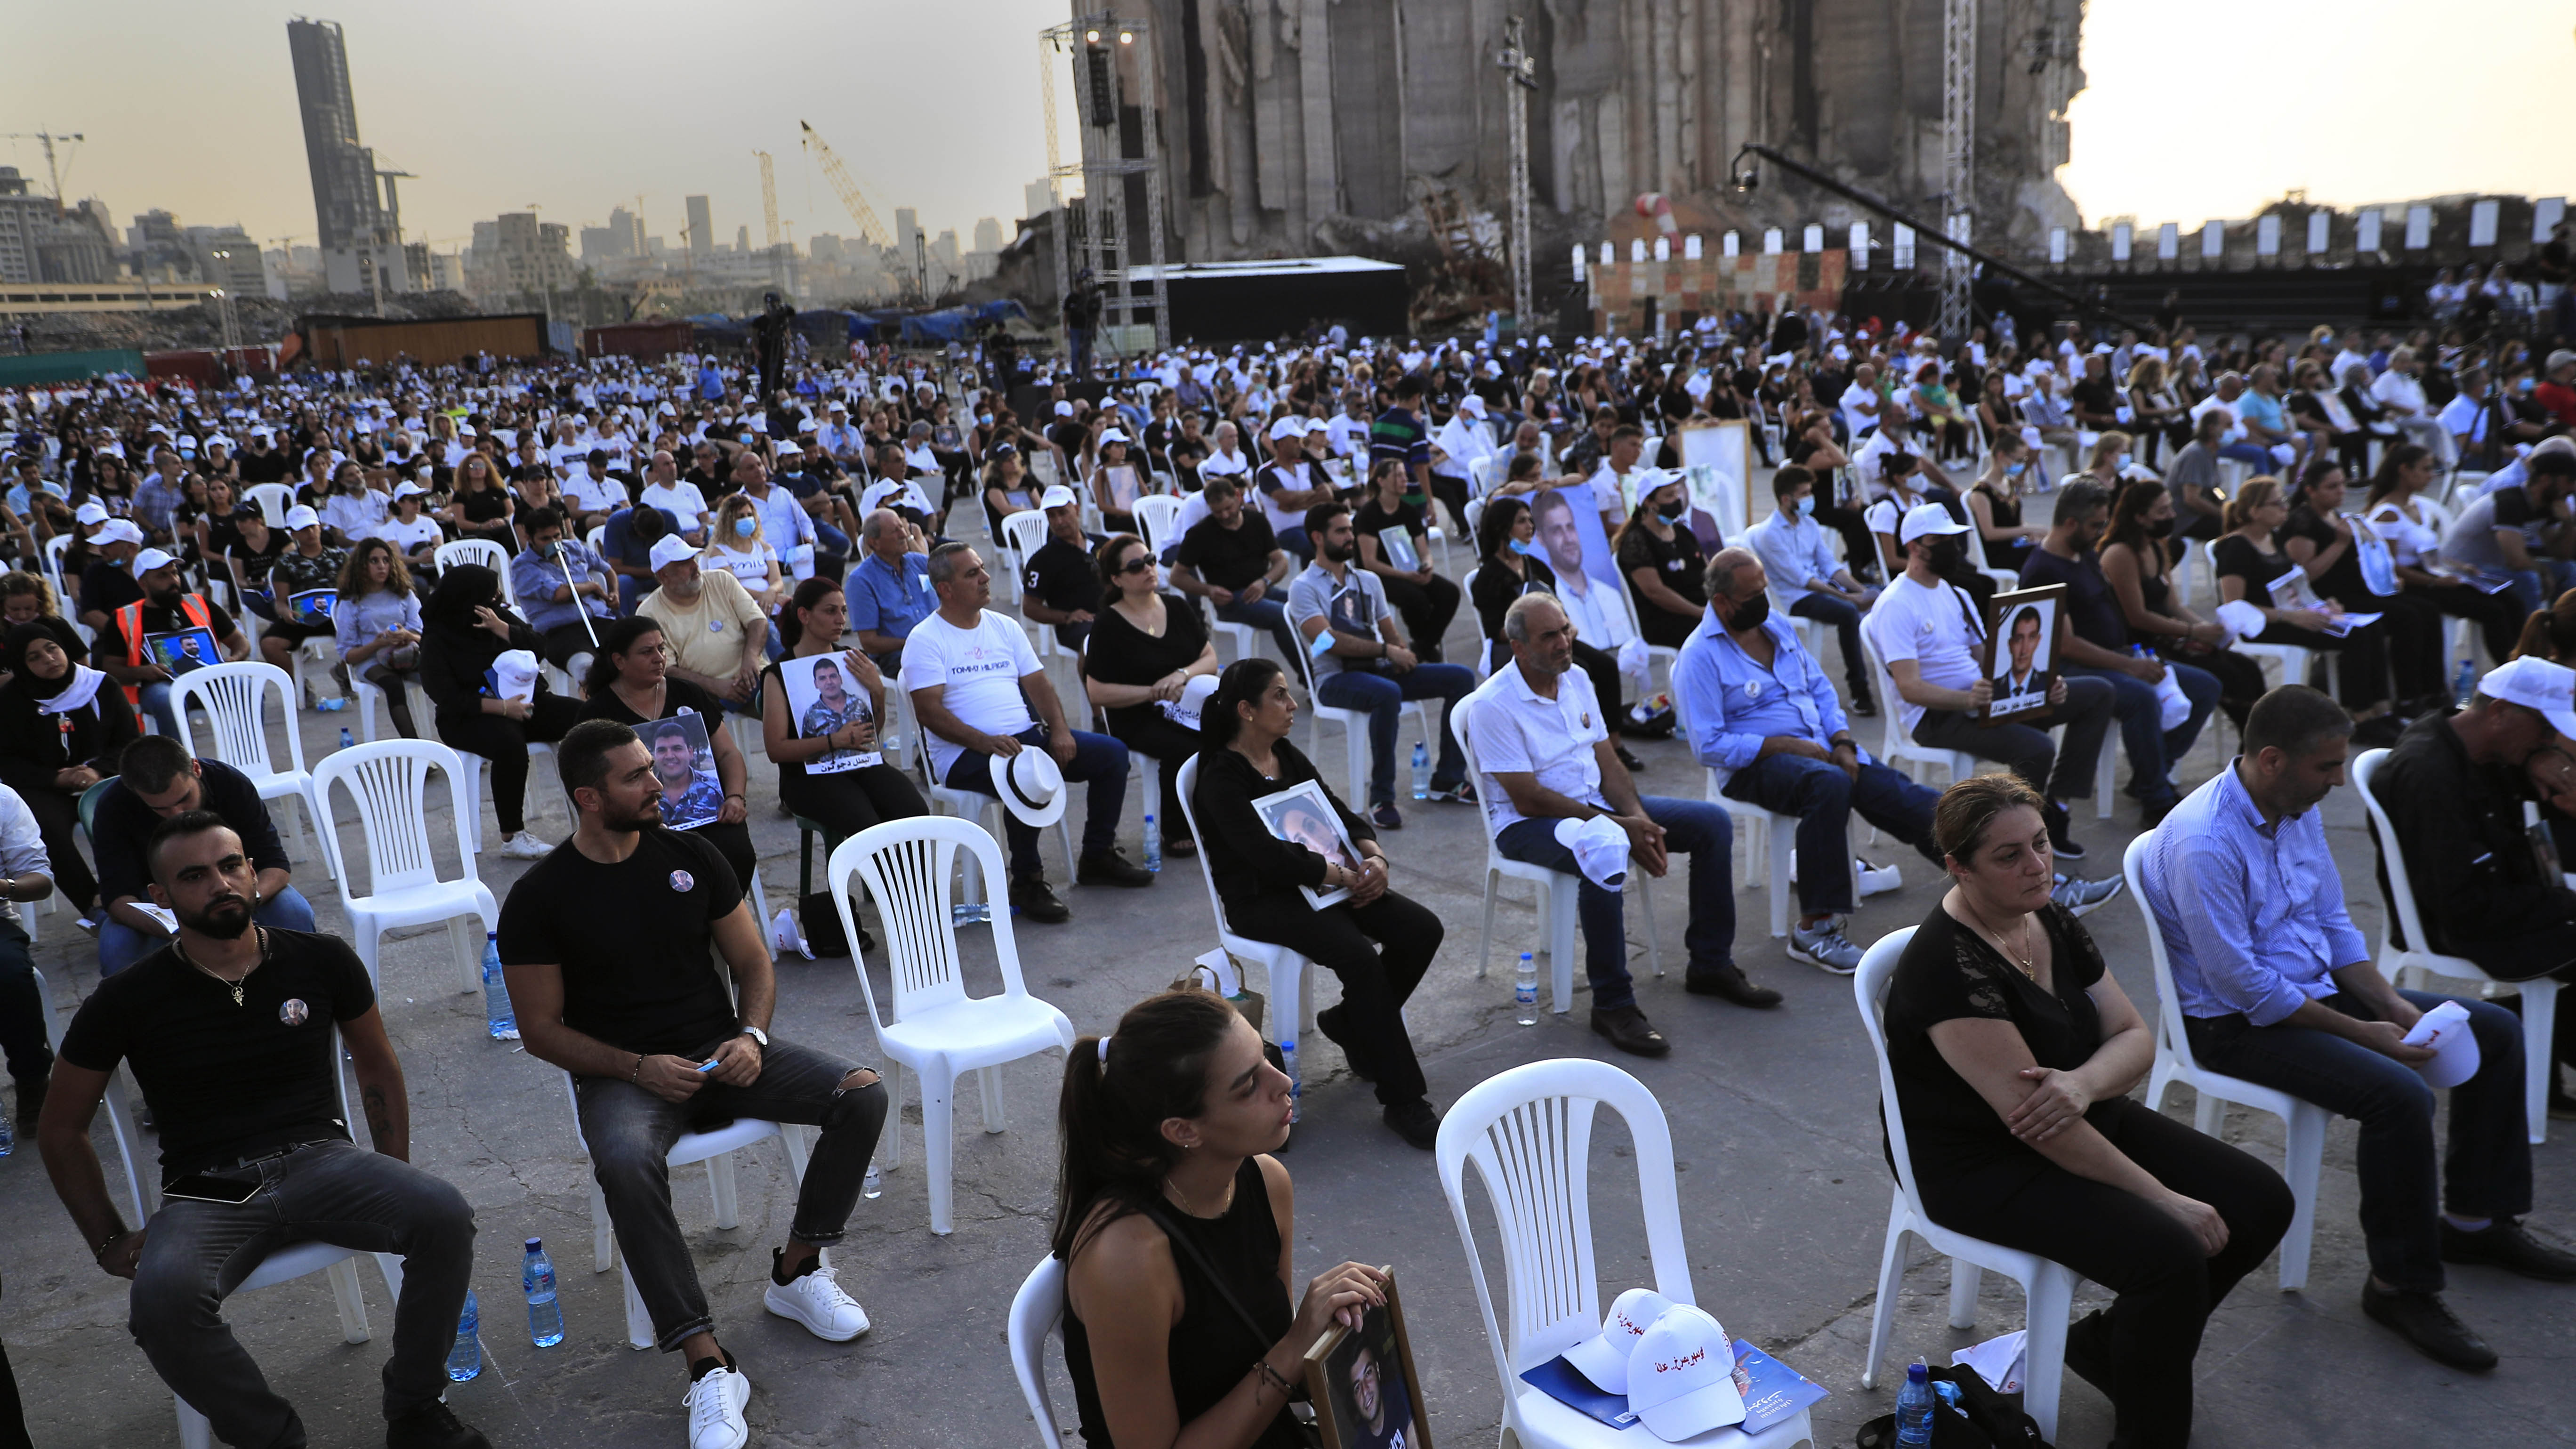 Relatives of victims who were killed in the massive blast last year at the Beirut port holds their portraits as they attend a Mass held to commemorate the first year anniversary of the deadly blast, at the Beirut port, Lebanon.